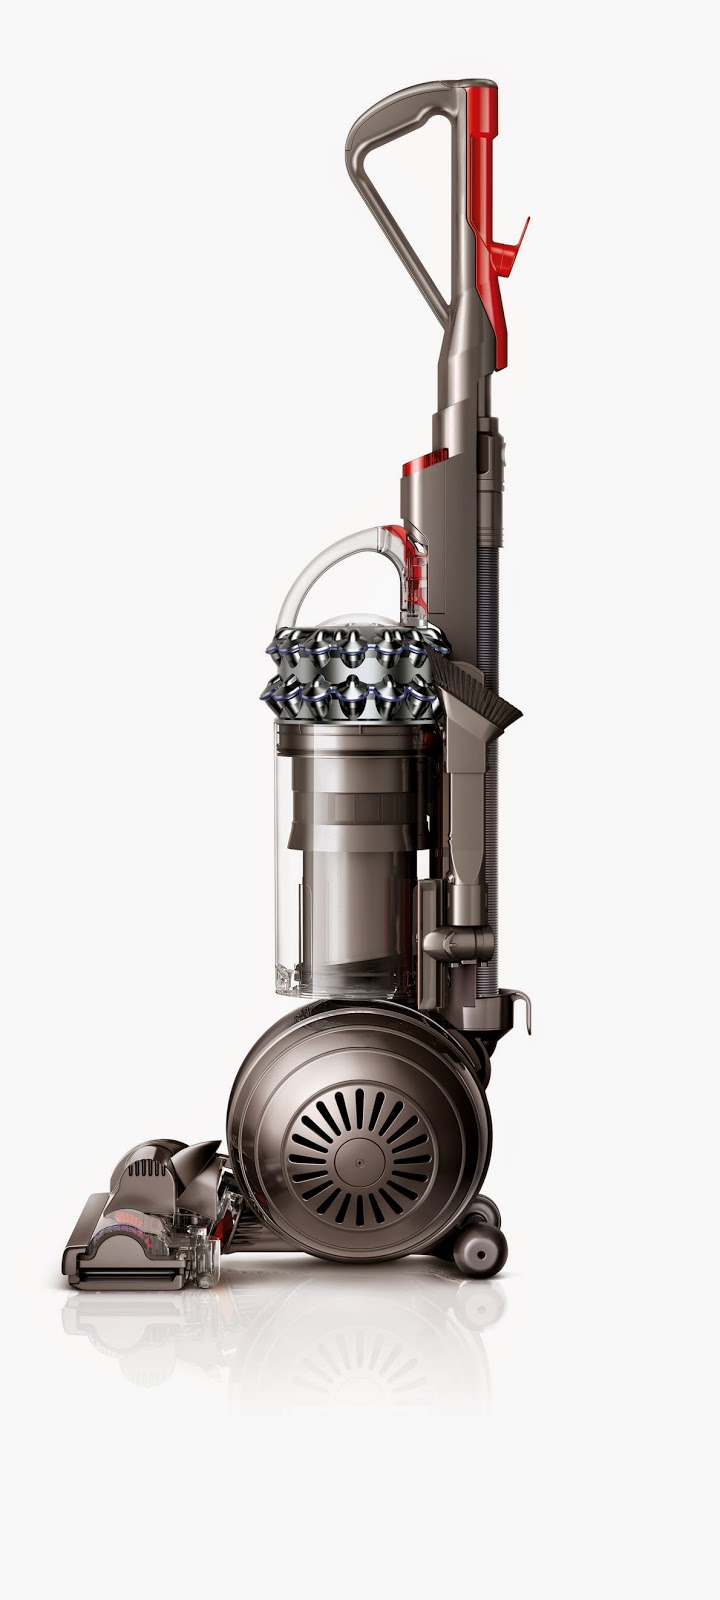 Dyson Does it Again! You'll Love the Powerful Dyson Cinetic Big Ball Animal + Allergy Vacuum!